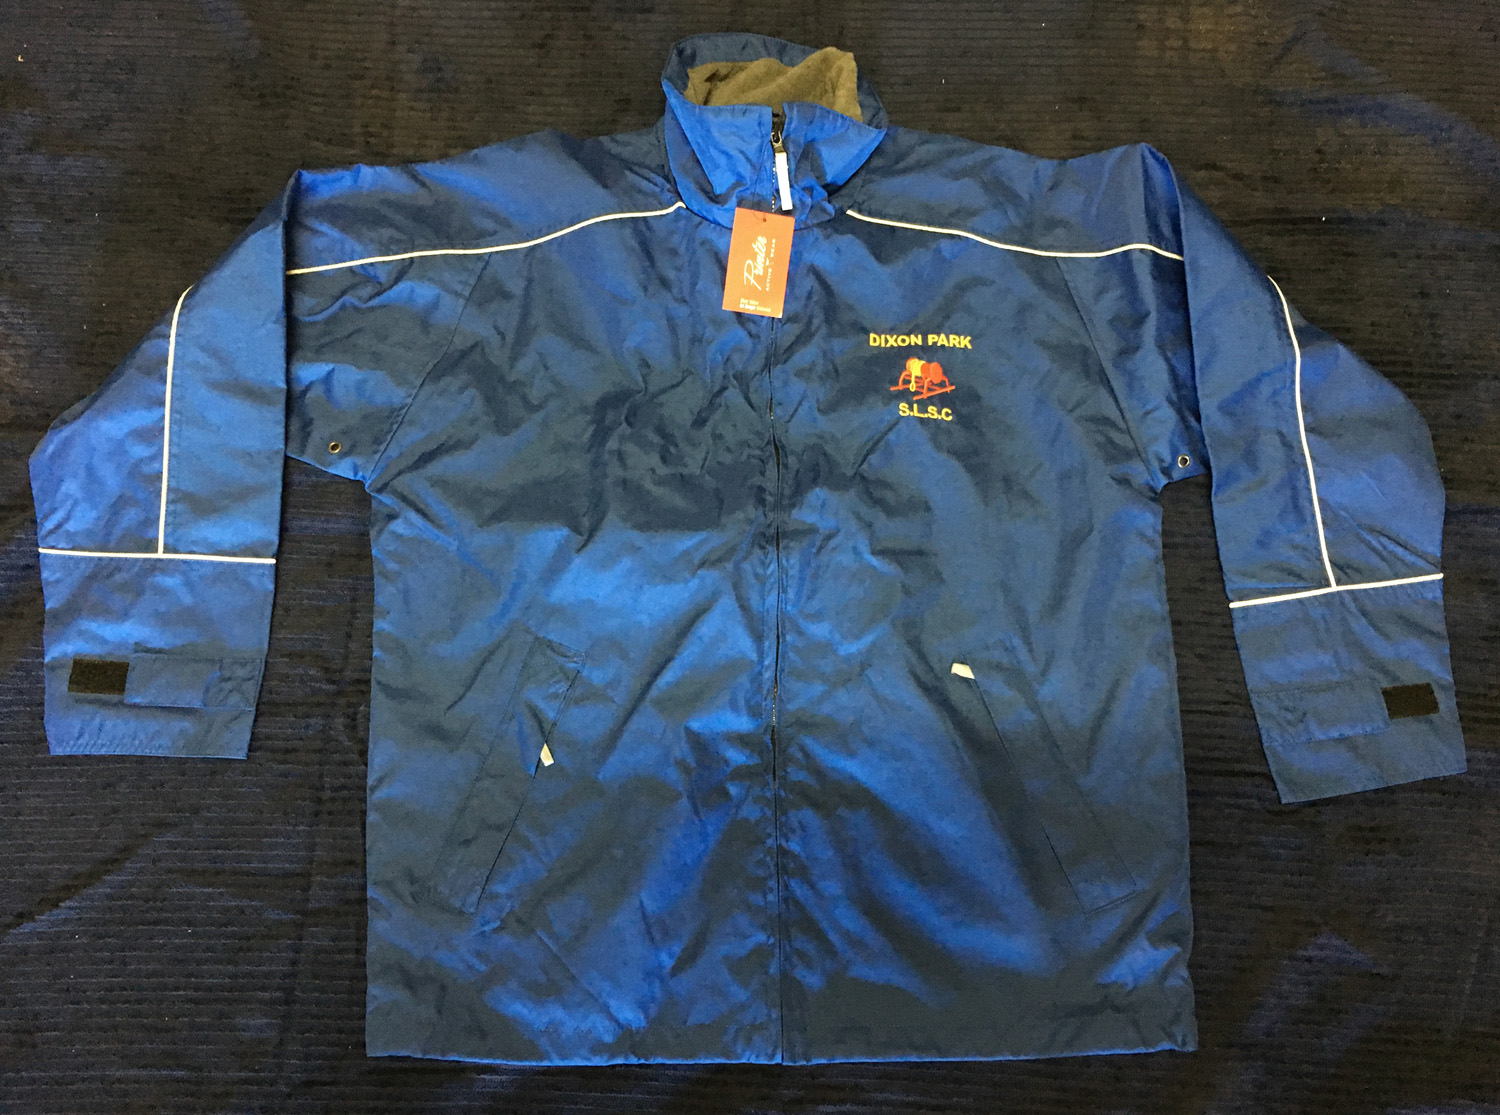 Blue Spray Jacket $30 Image